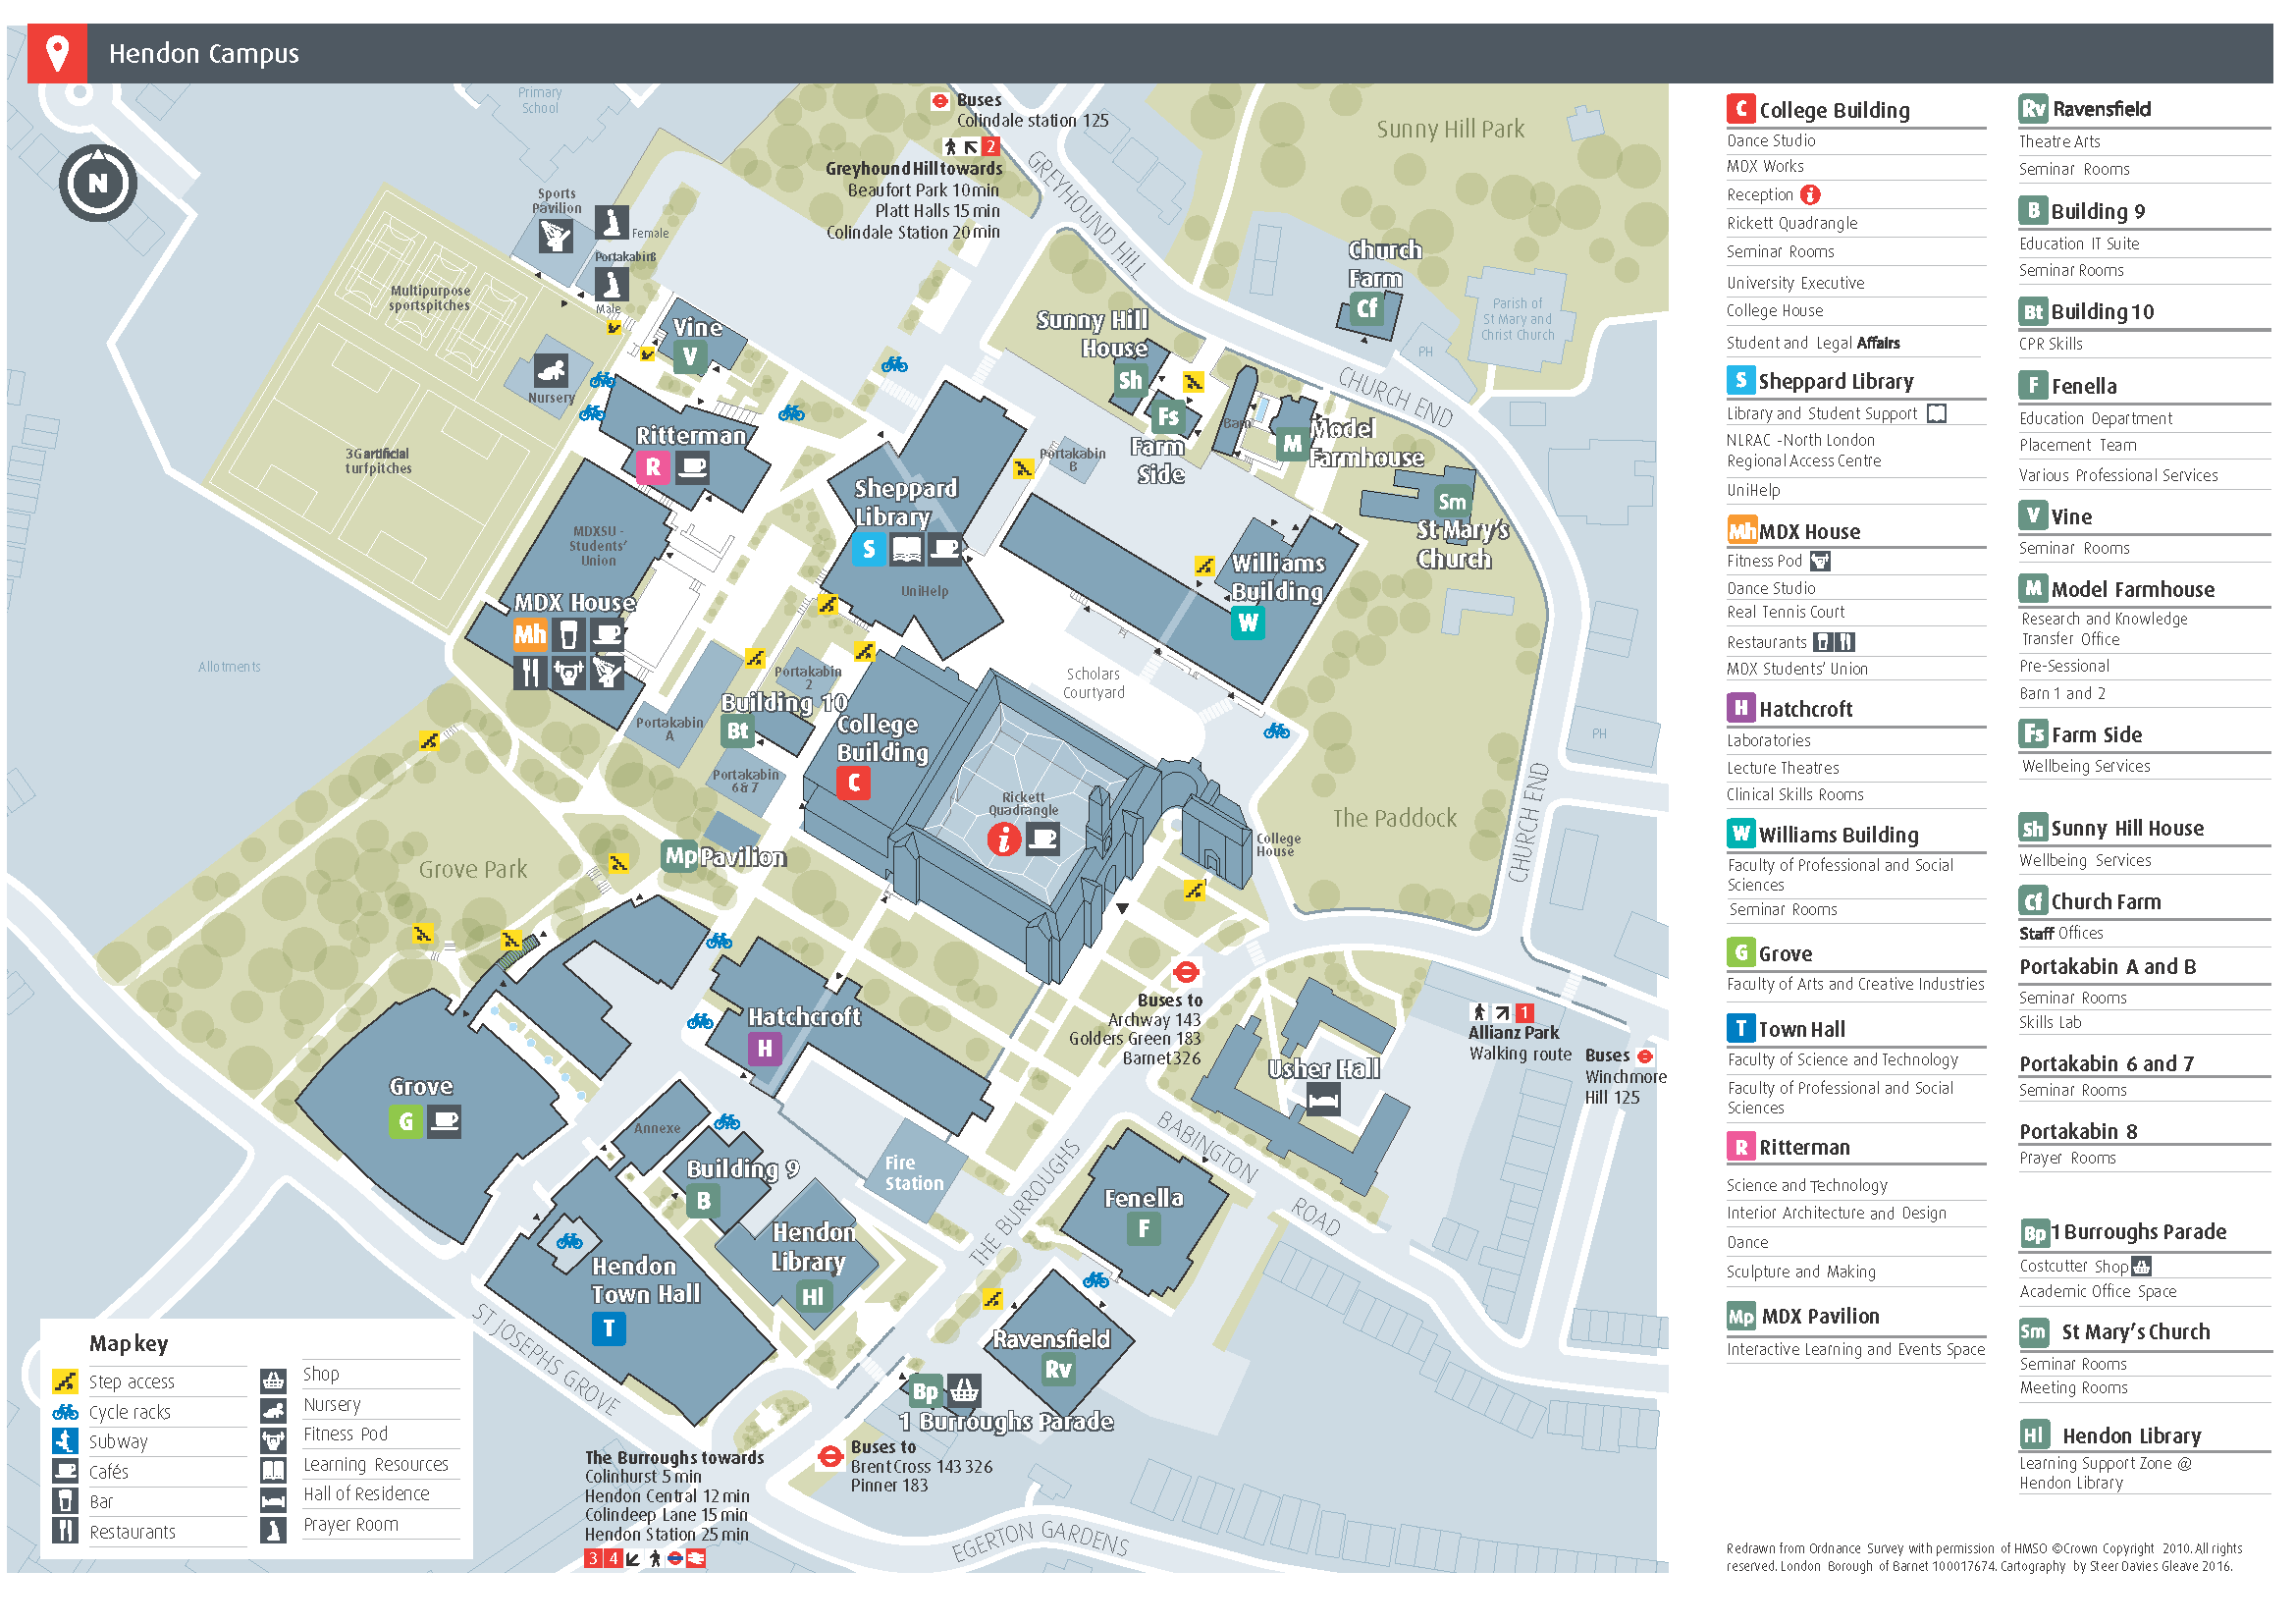 A full campus map